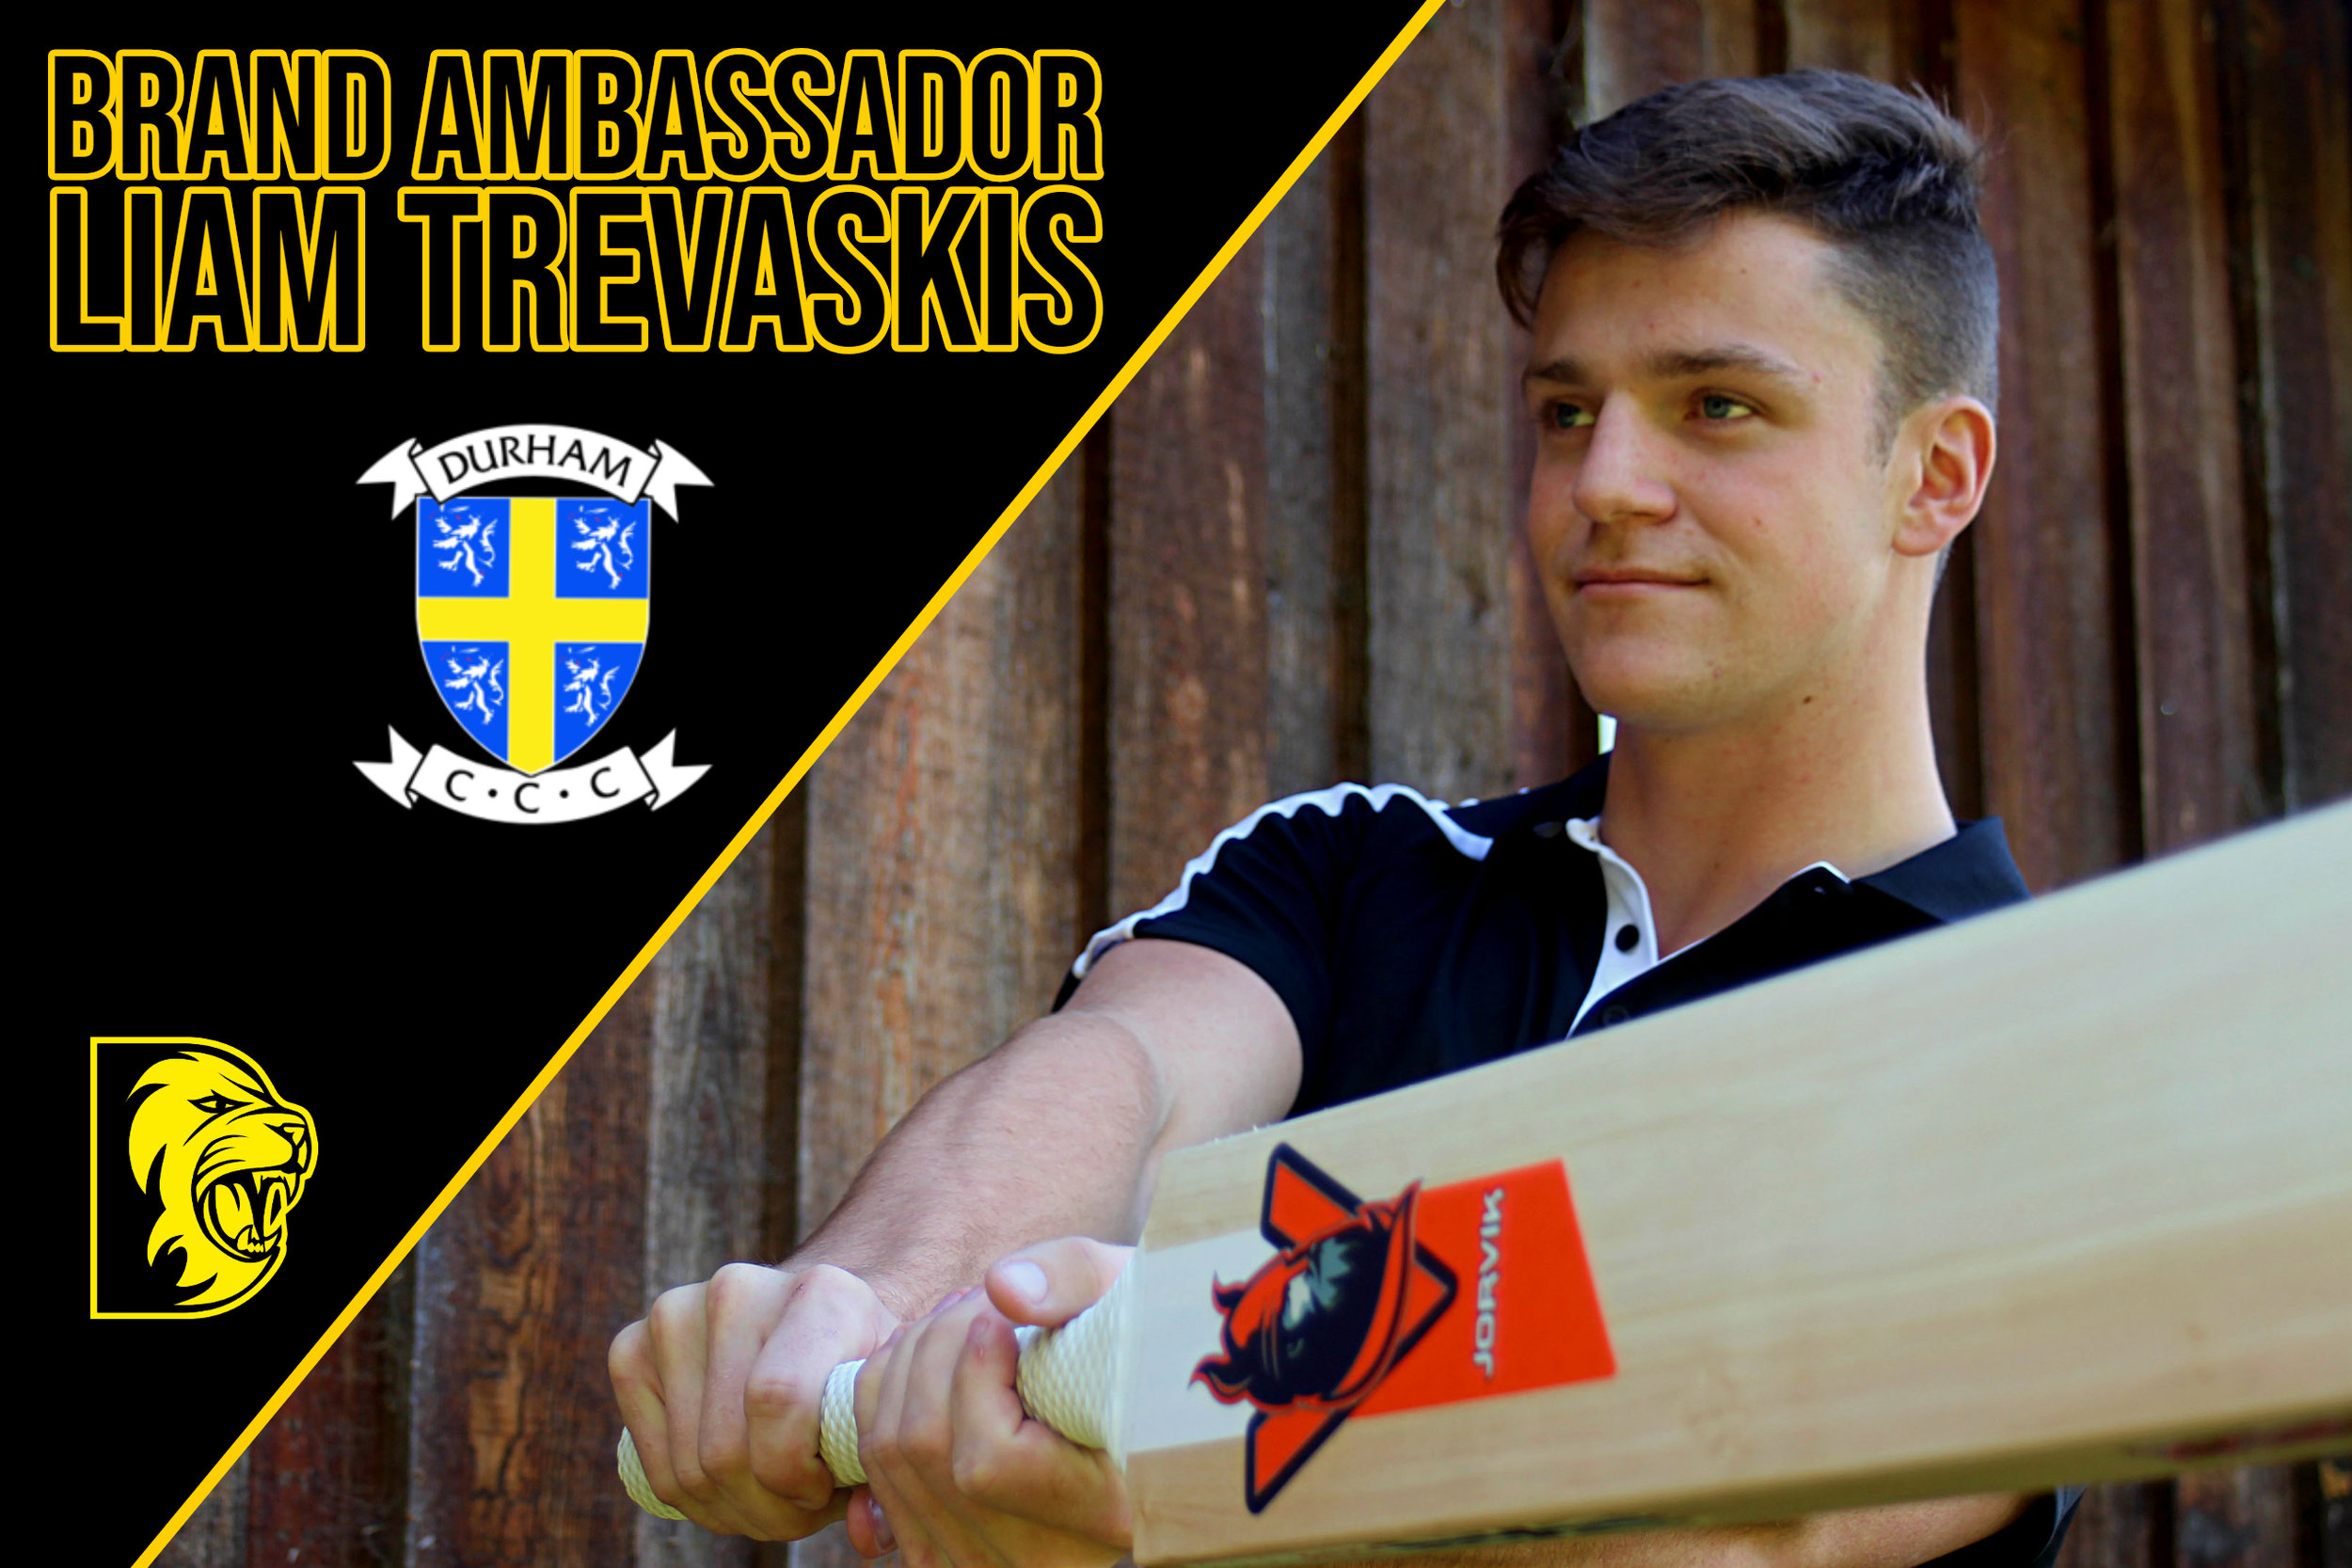 Liam Trevaskis - An English first class cricketer, a slow left arm orthodox spinner and left handed batsmen, Liam plays for Durham County Cricket Club.Liam will be using the Hel-Fyr and Thor ranges for the 2019 season.follow Liam on twitter.com/liamtrevaskis